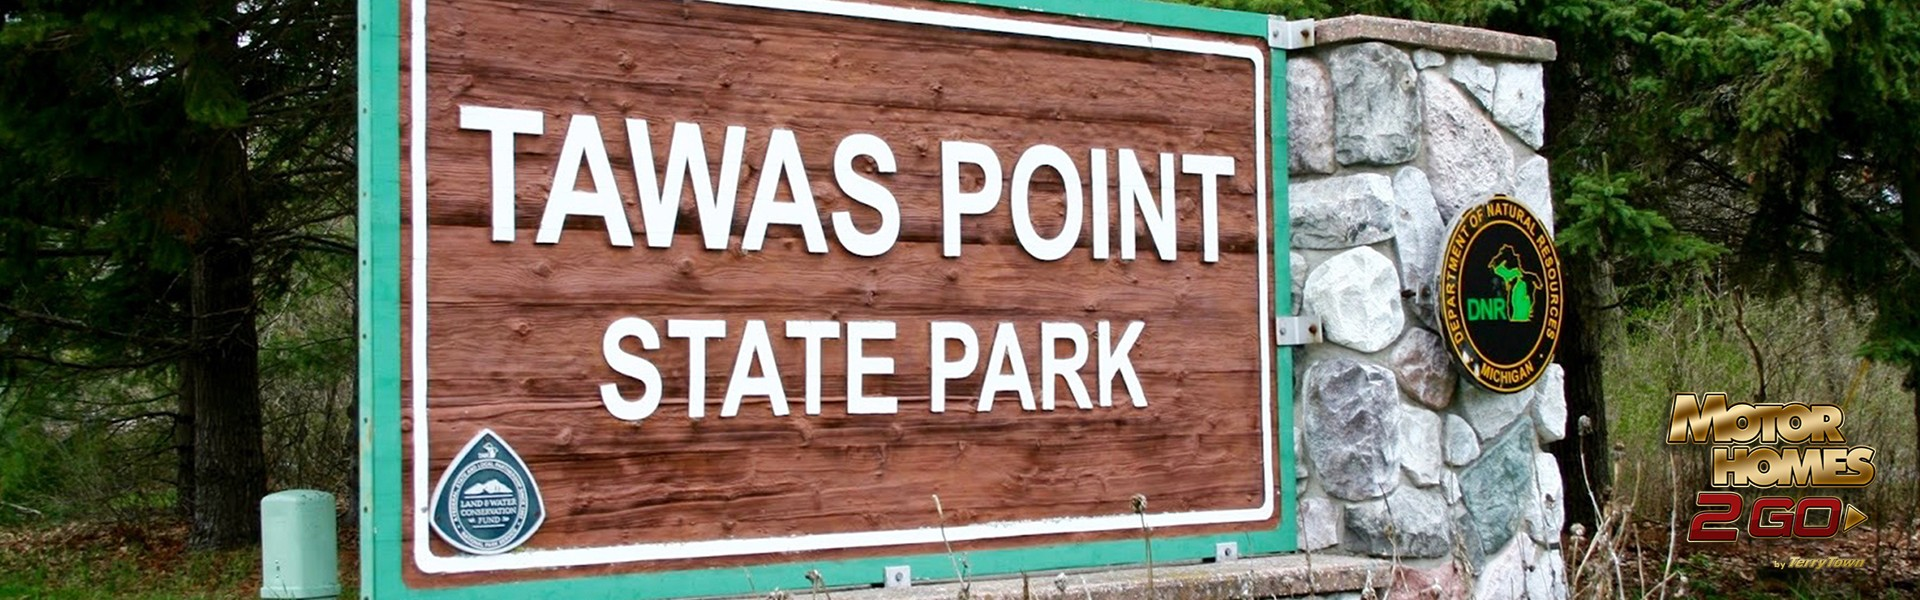 Tawas Point State Park Banner